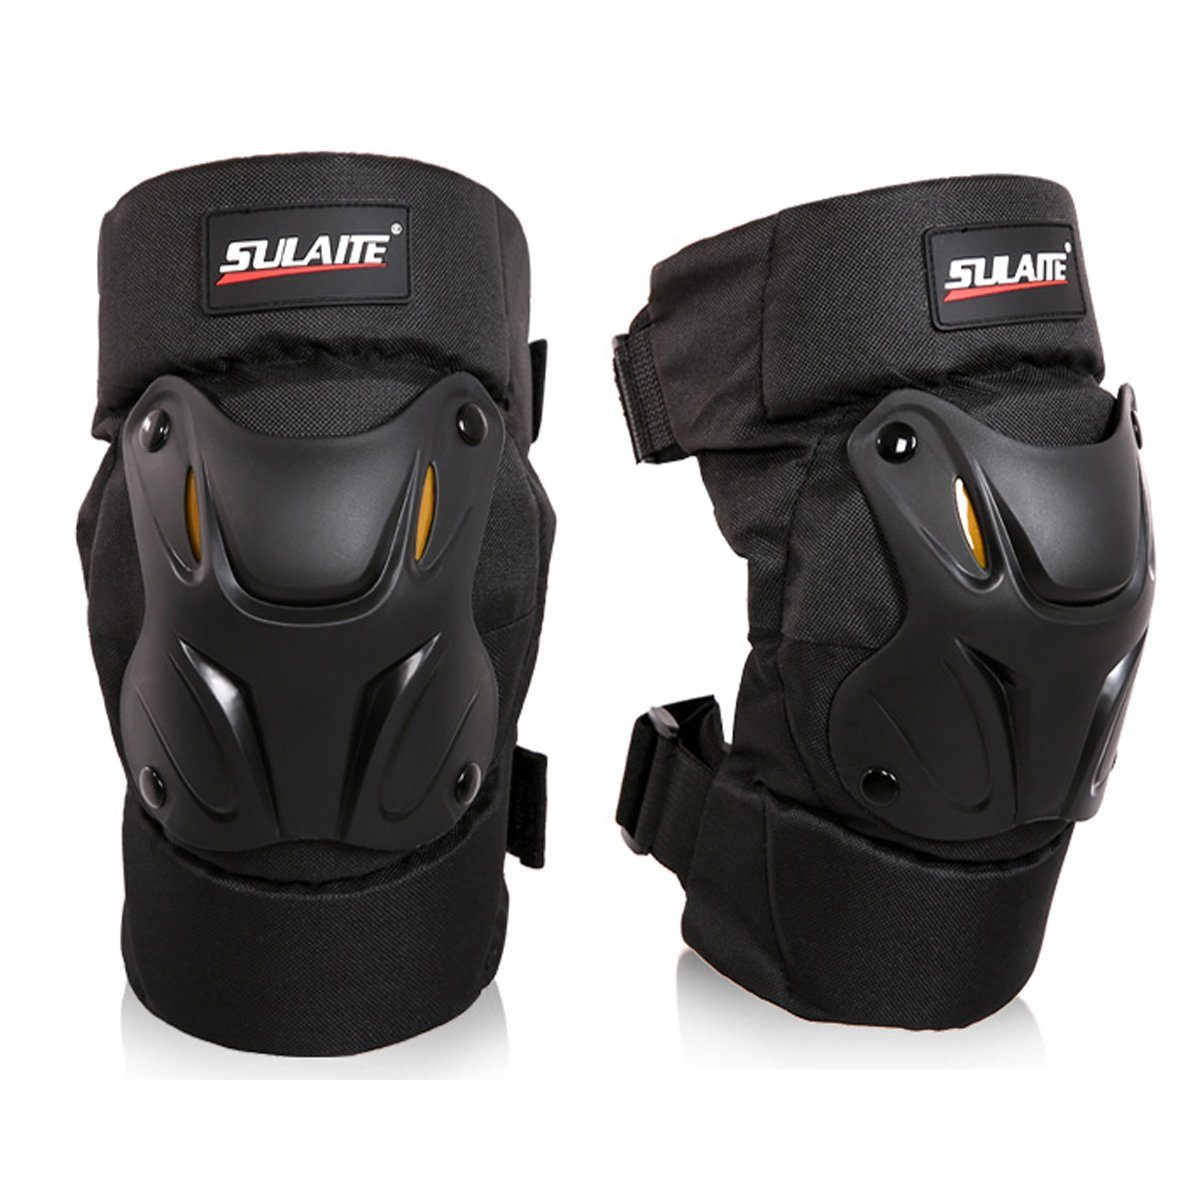 GuTe Knee Pads Guard Gear Protective for Motorcycle Mountain Biking Bicycle -1 Pair by GLEIM